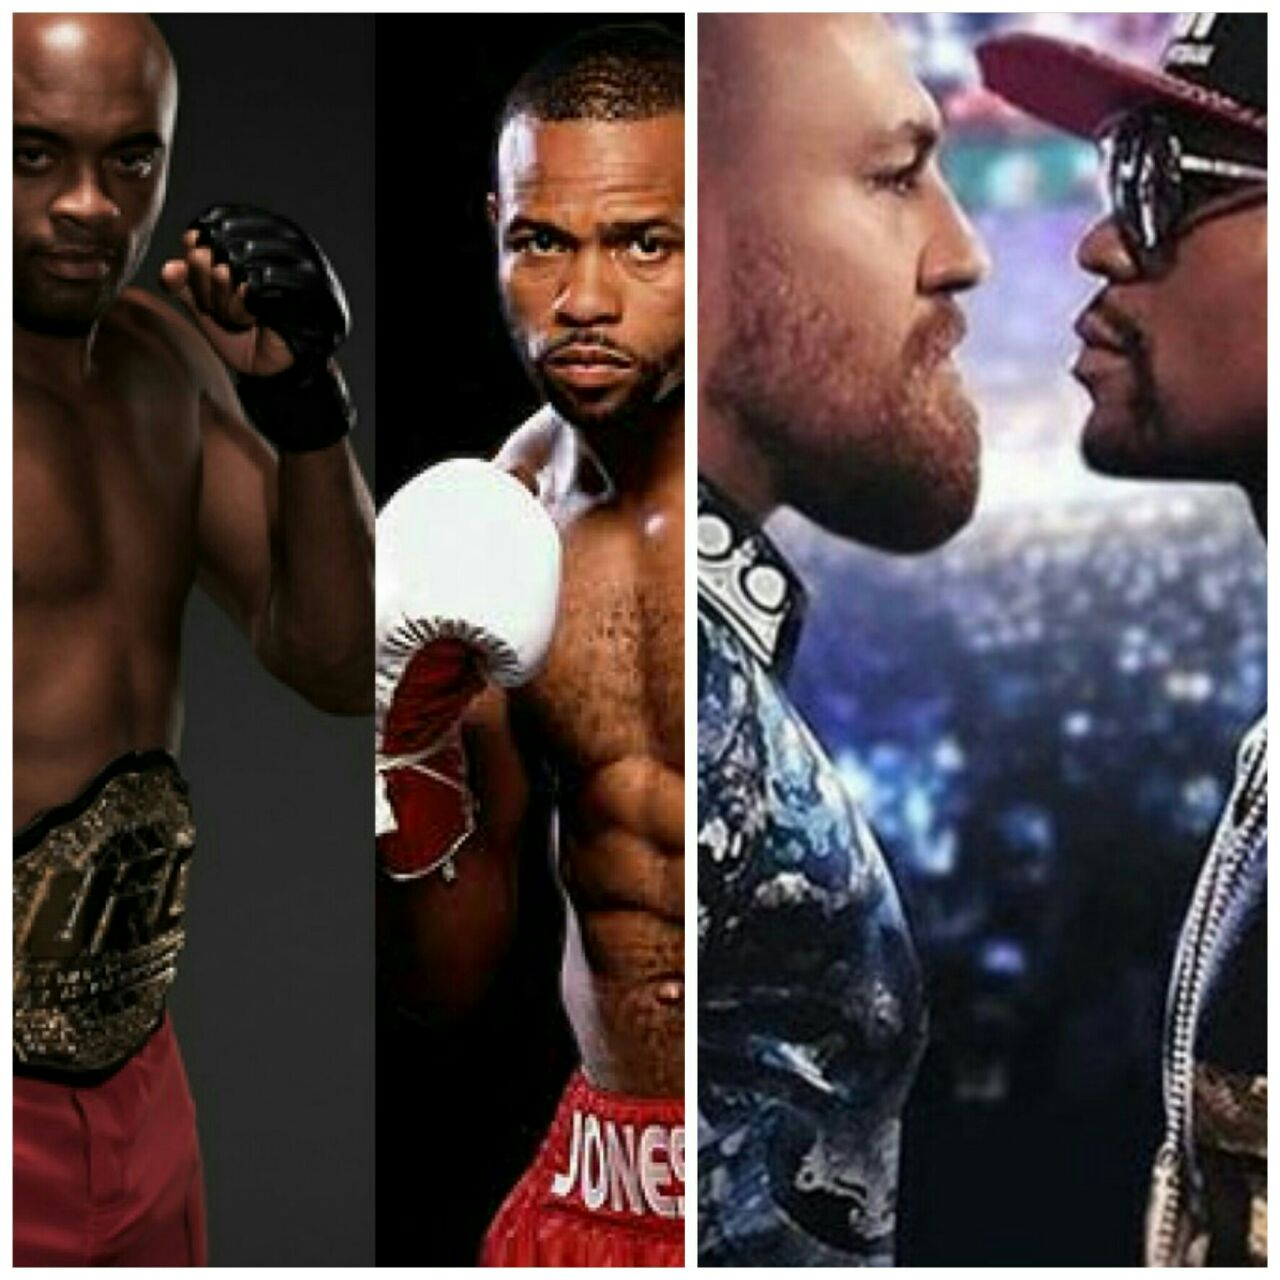 Anderson Silva versus Roy Jones Jr. - Is it time we seriously consider crossover fights? -